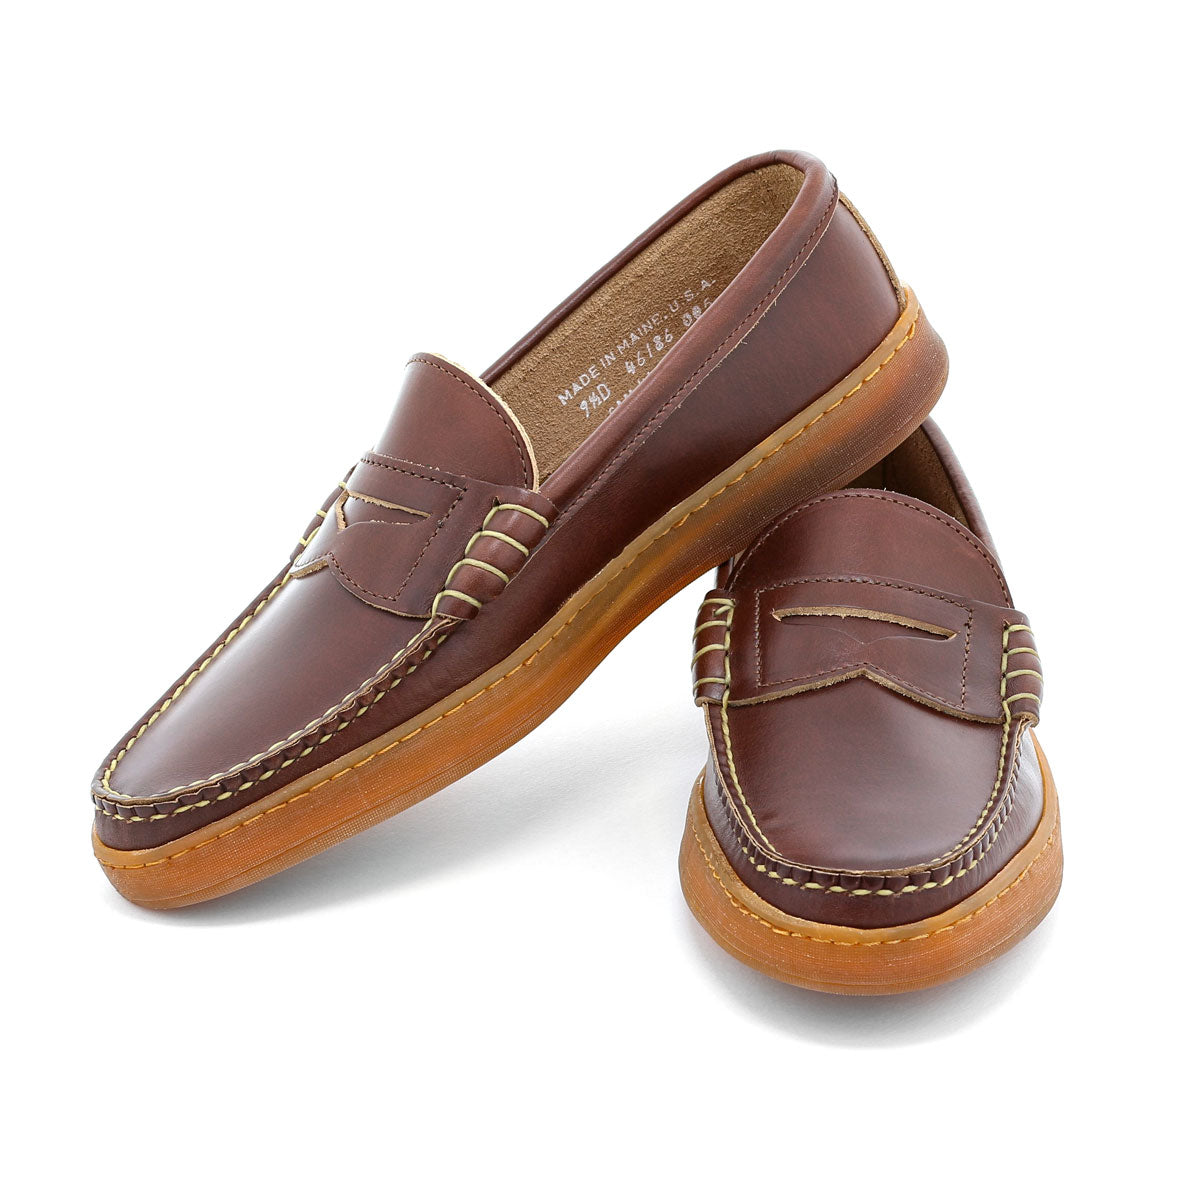 Beefroll Traveler - Carolina Brown Chromexcel